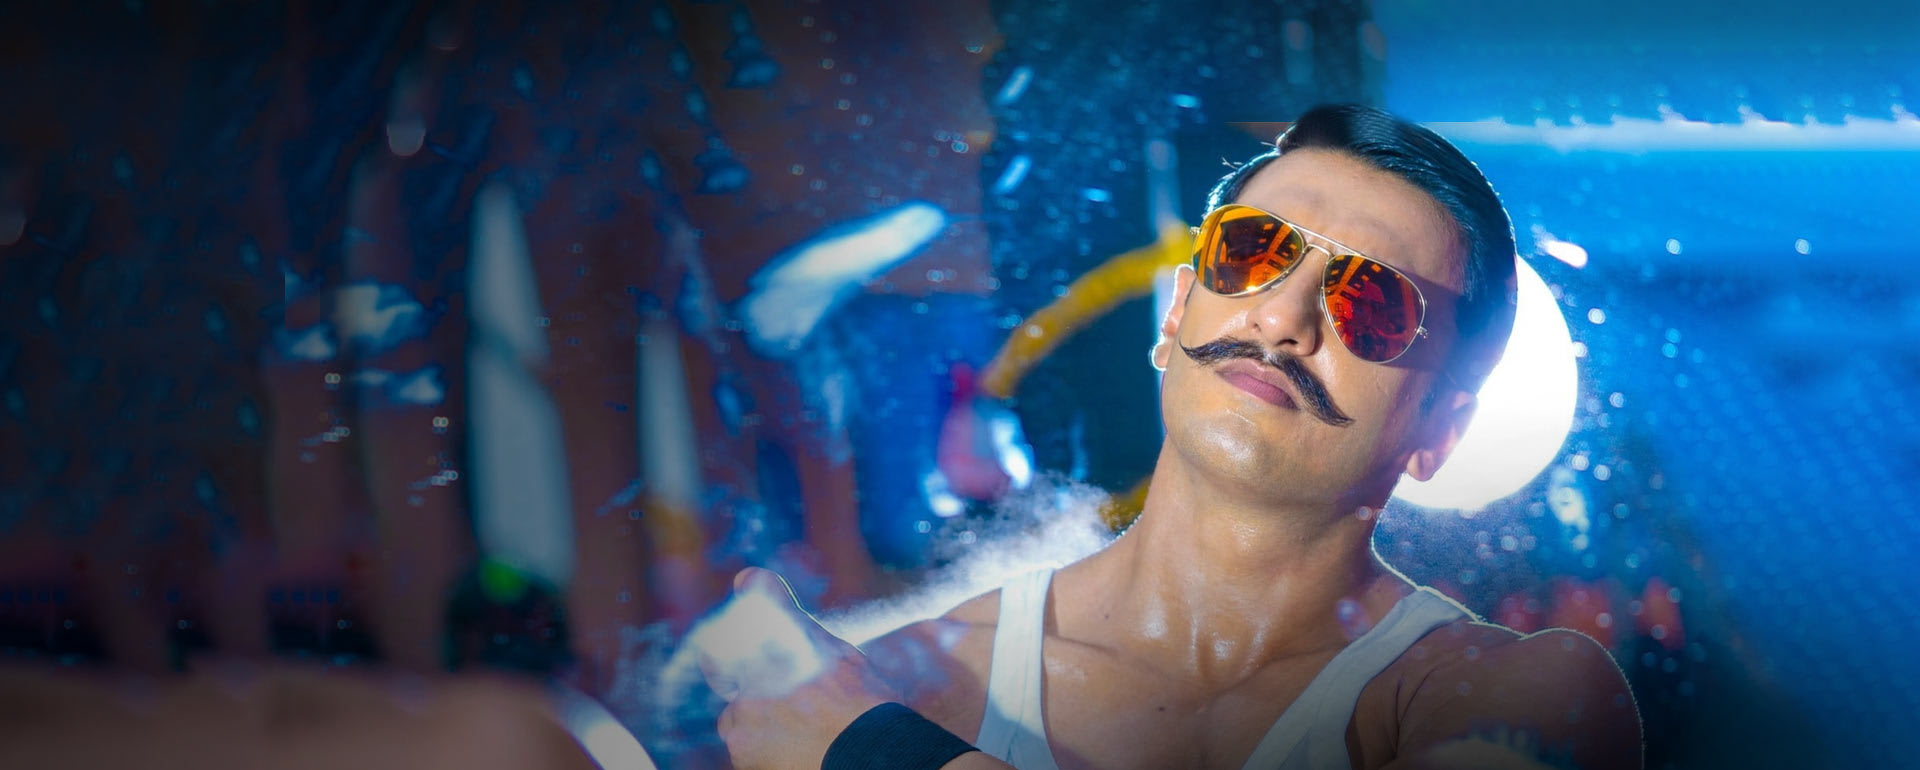 simmba full movie watch online torrent magnet